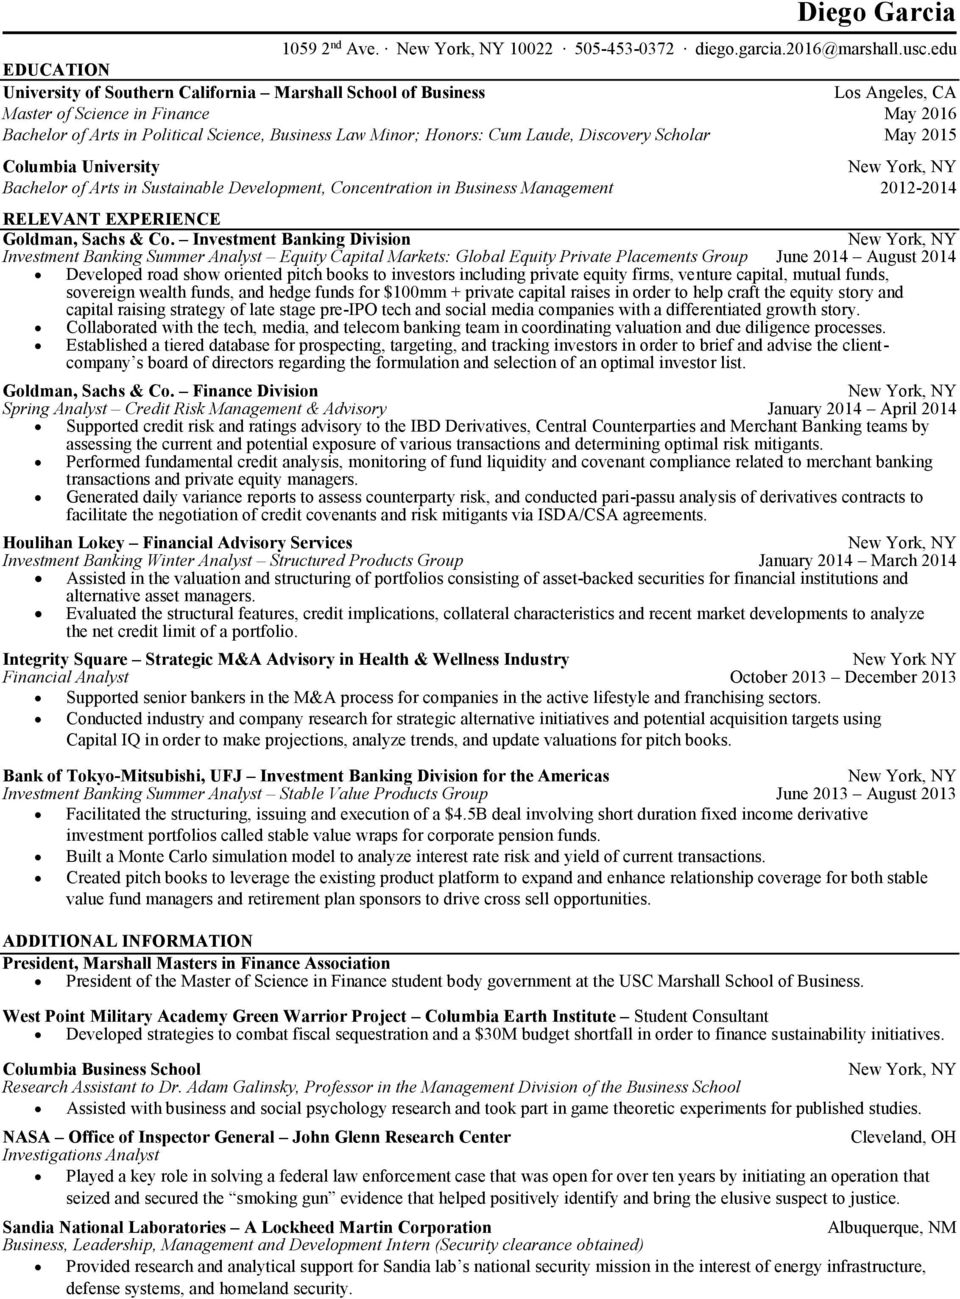 resume cover letter owl purdue resume cover letter sales